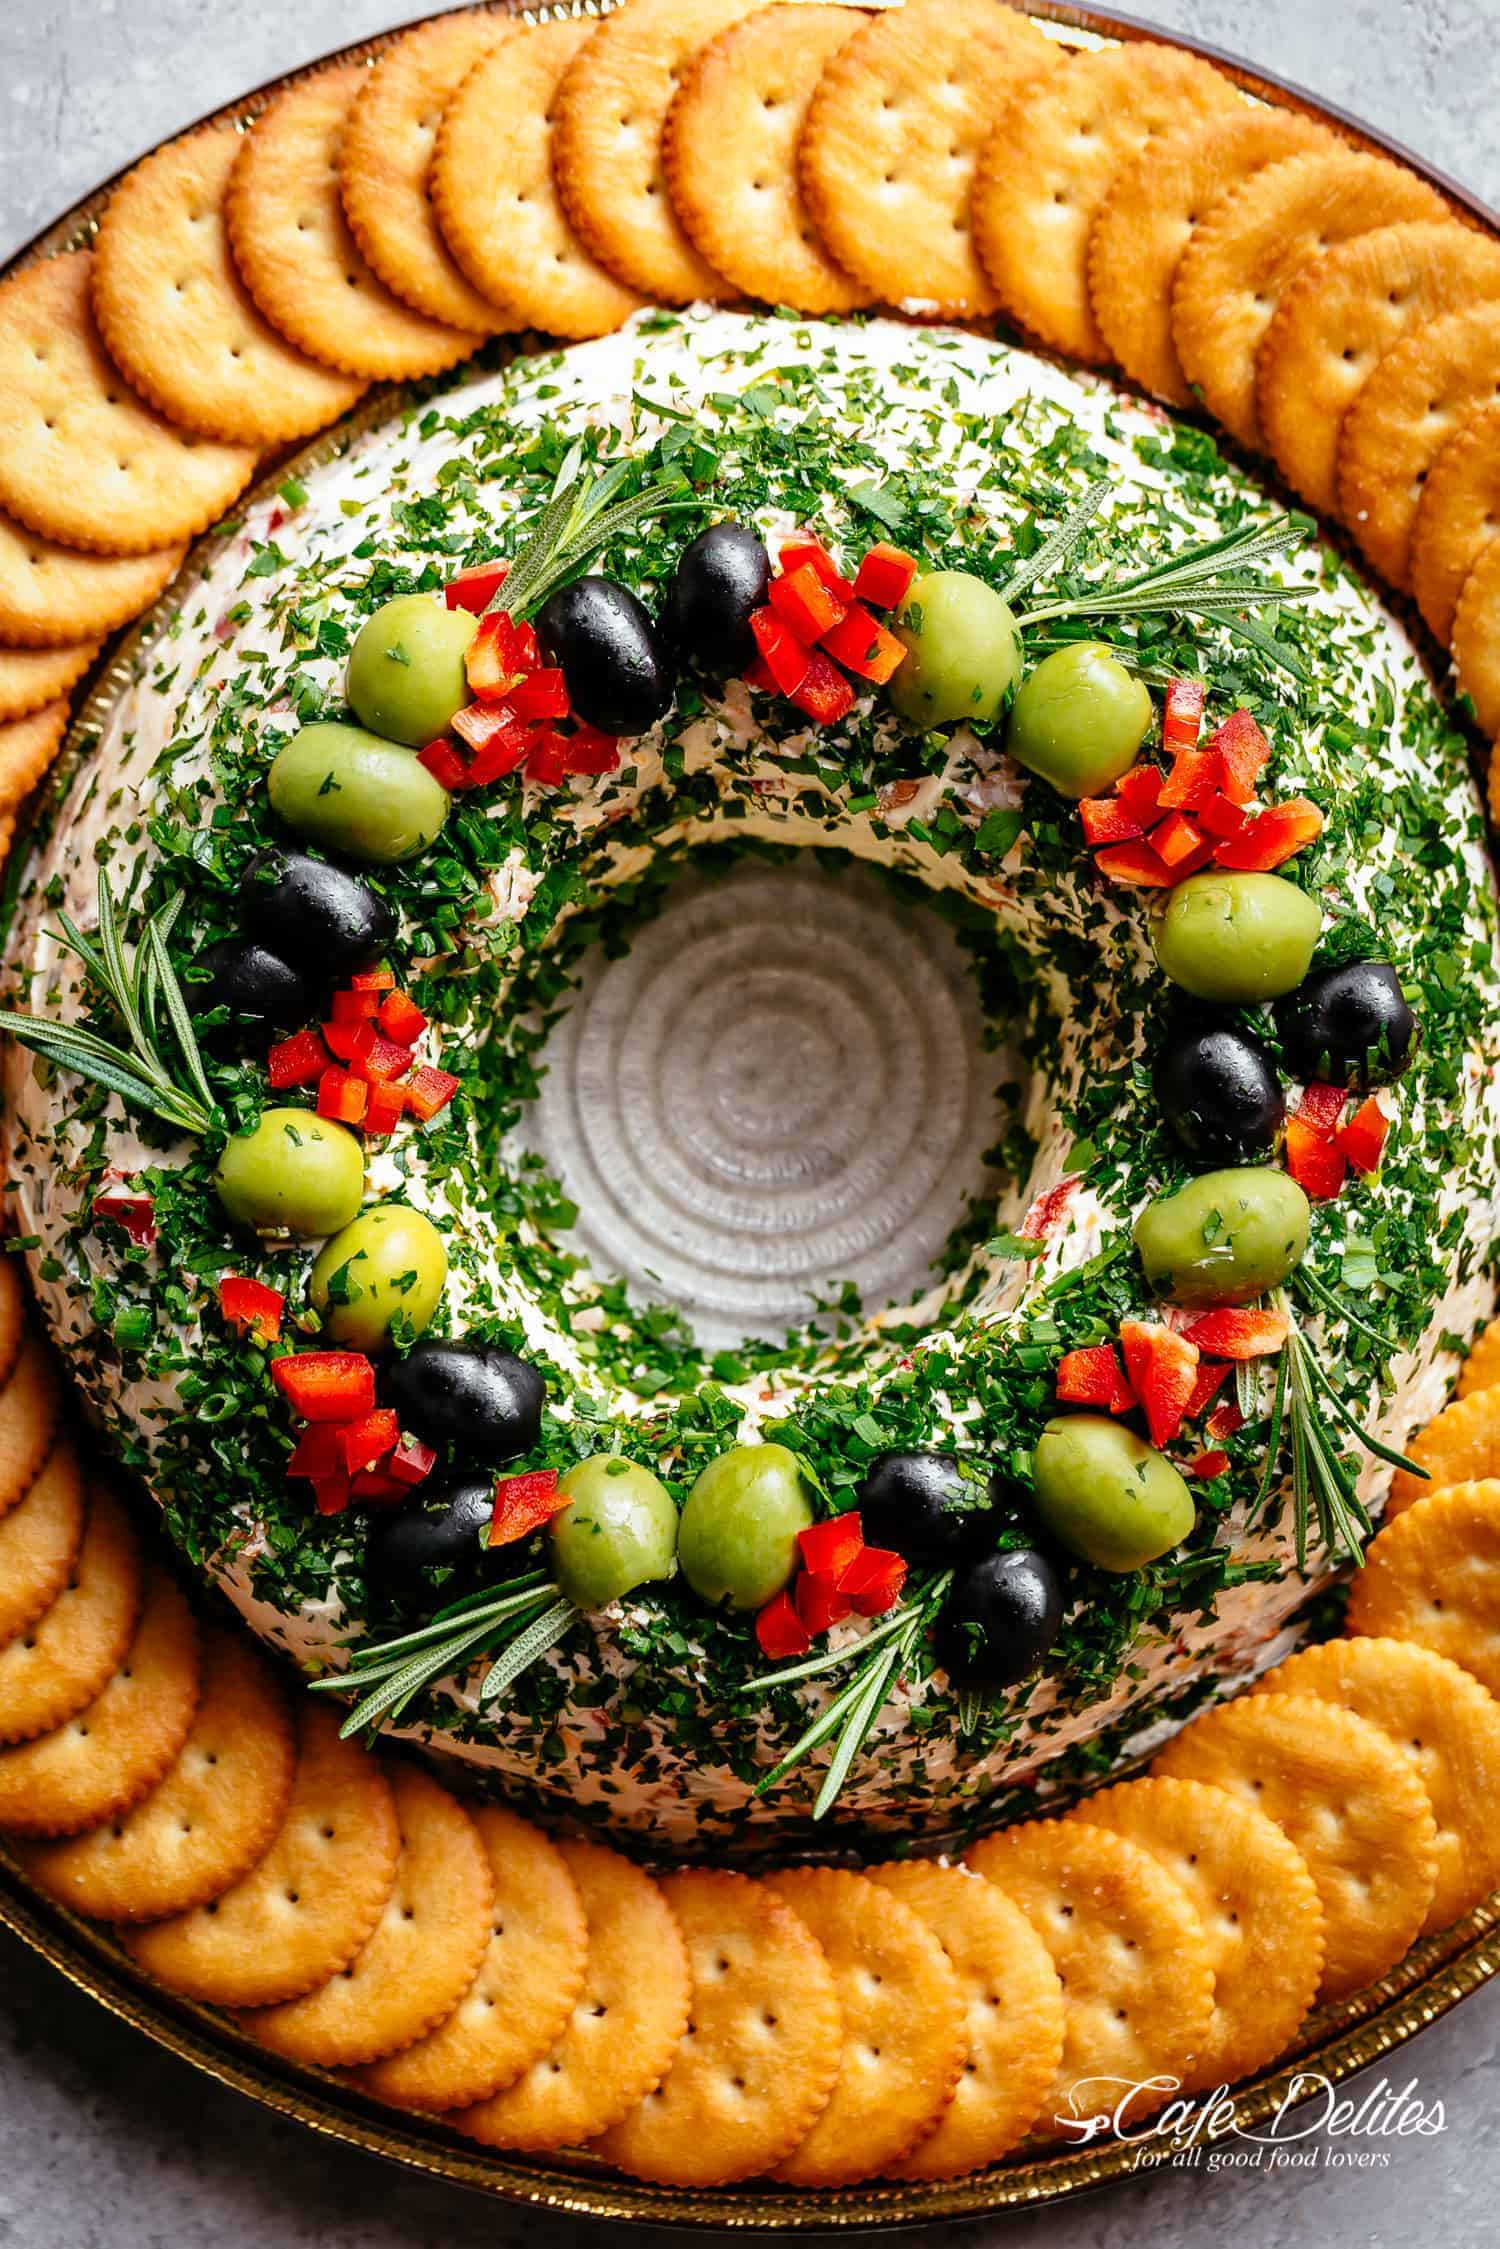 Christmas Bacon Cheese ball Wreath is a showstopper! Full of crispy bacon, cheese, chives and onions, this is a holiday masterpiece! | cafedelites.com